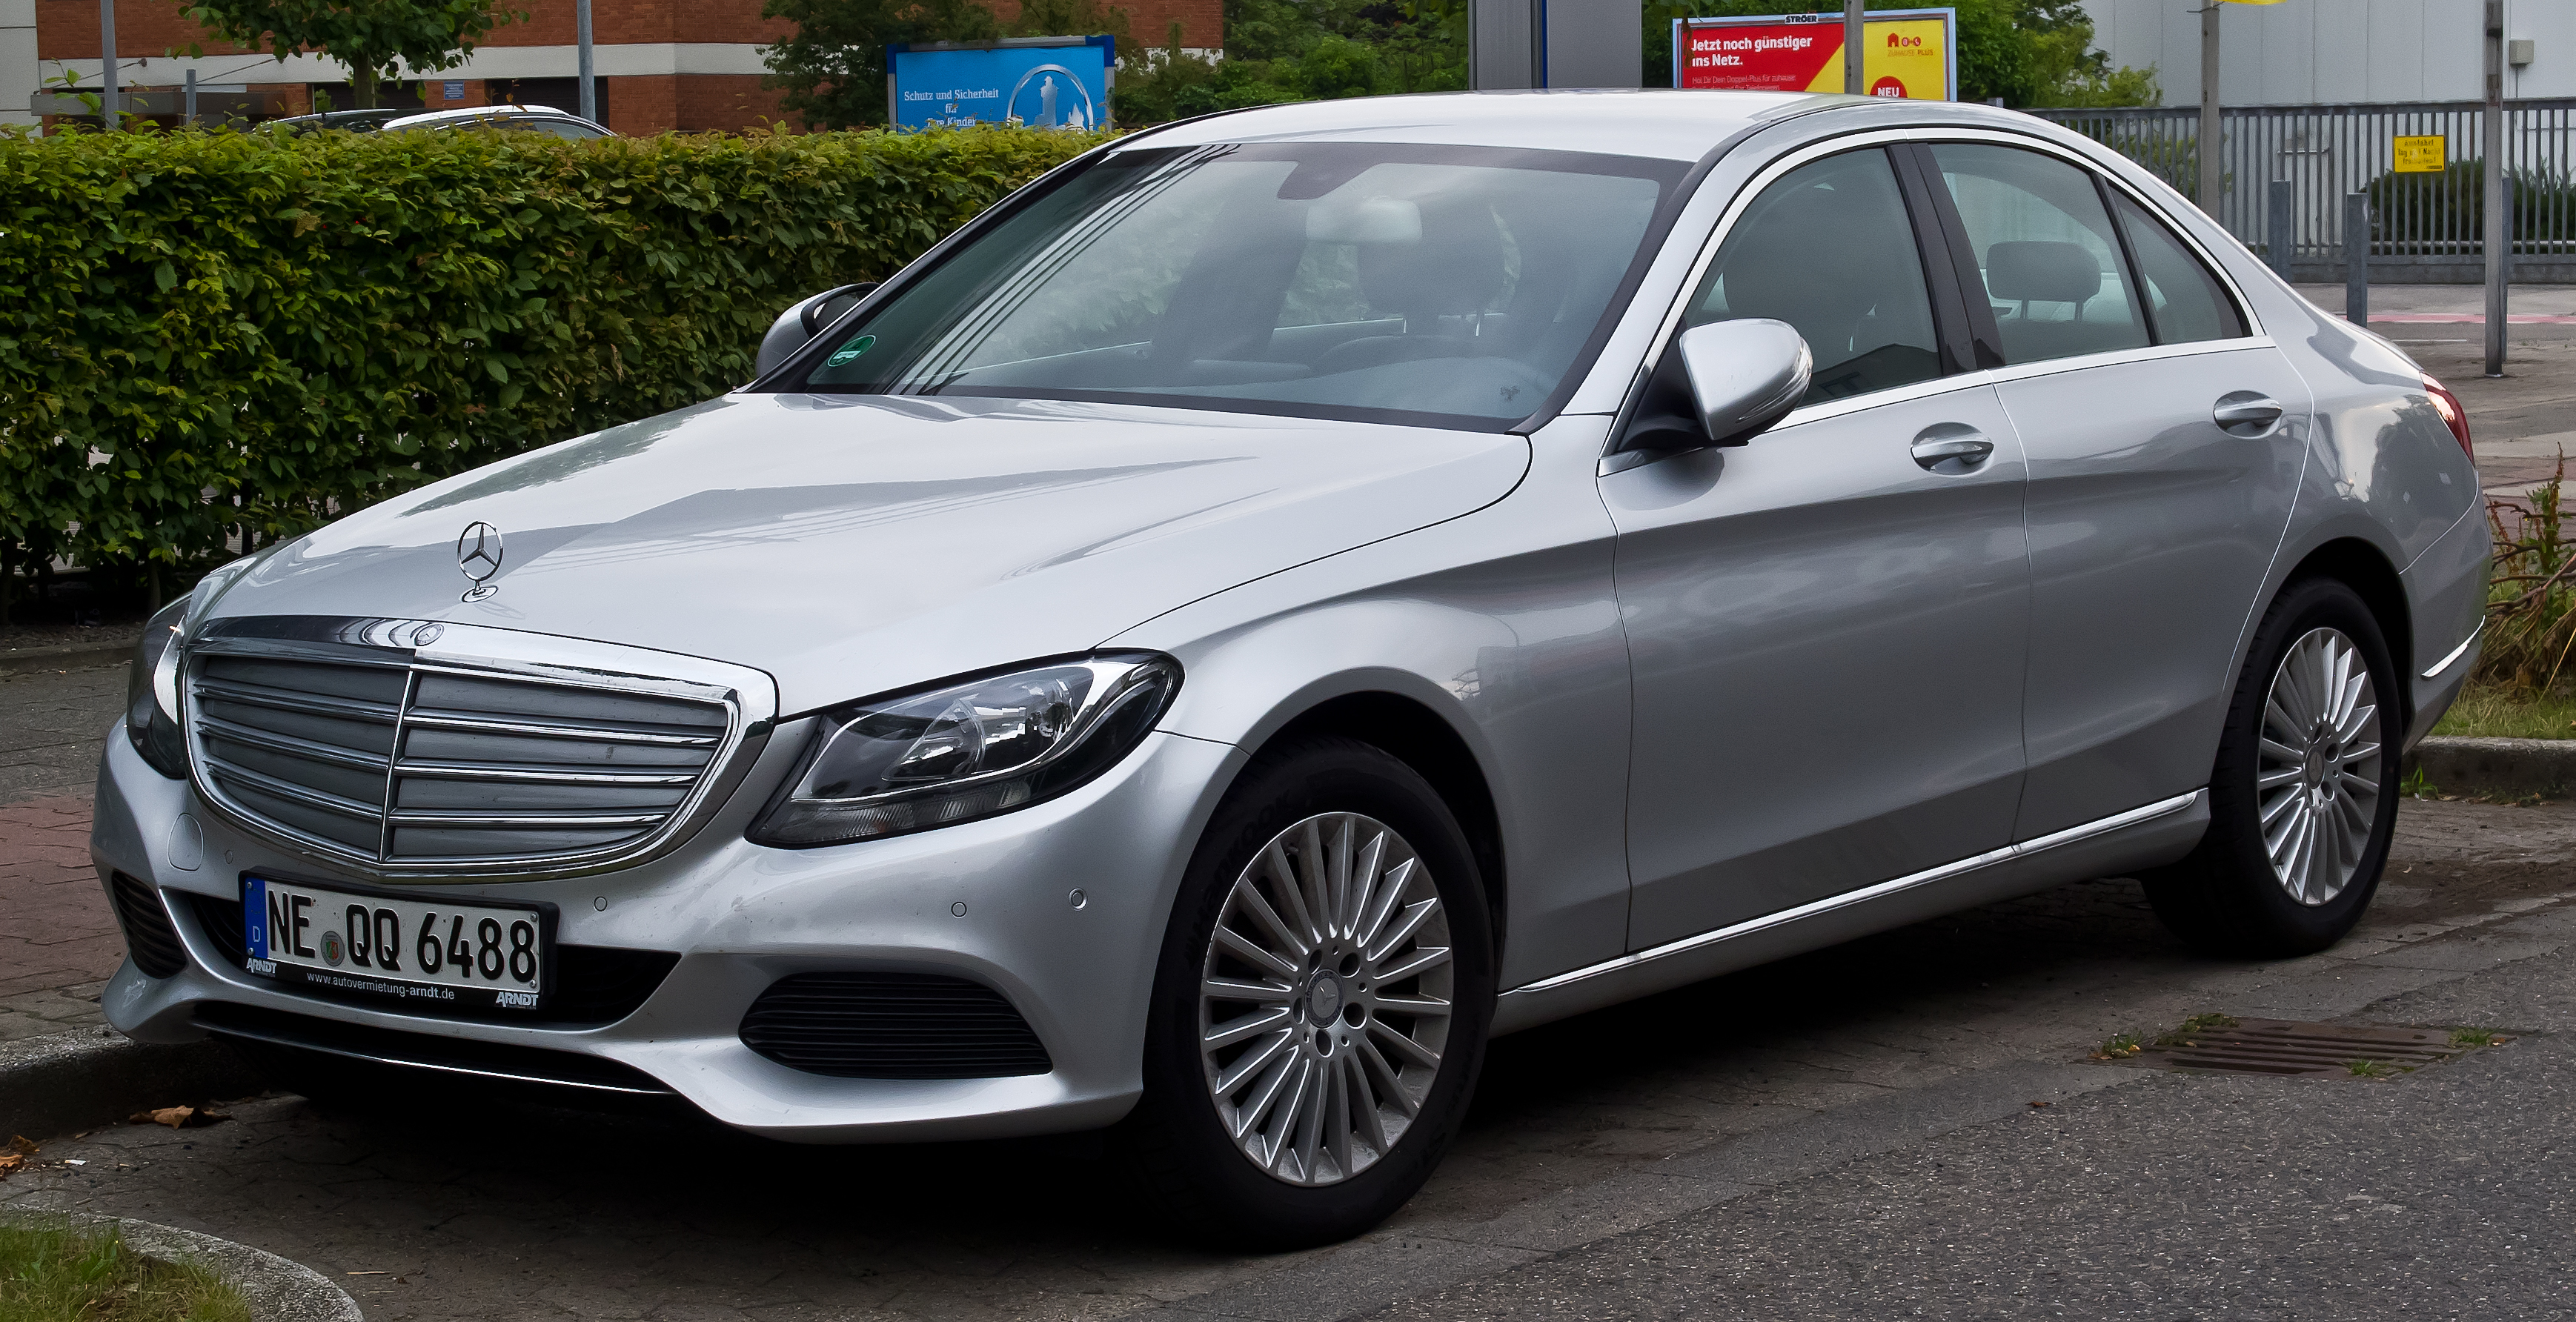 Mercedes benz c class 2017 prices in pakistan pictures for Mercedes benz prices